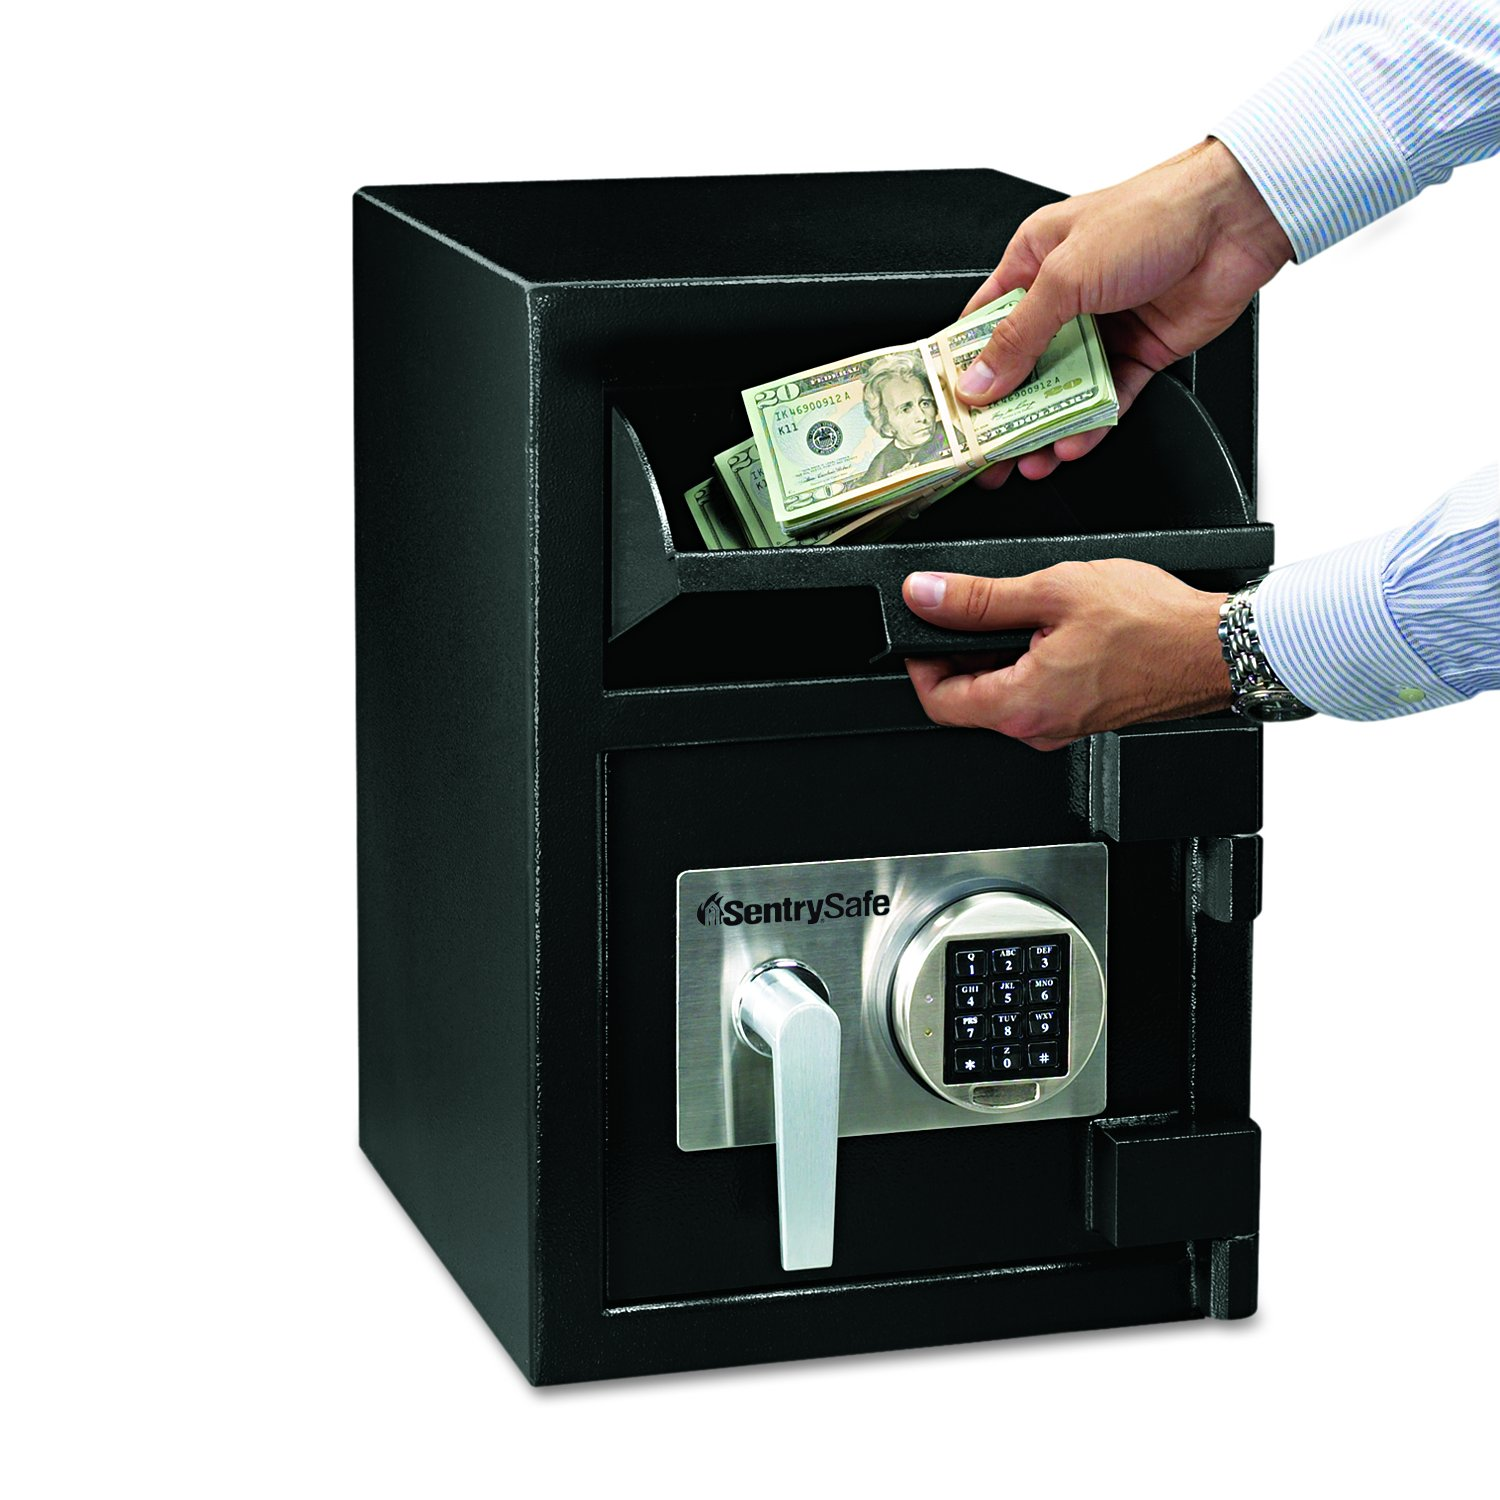 SentrySafe Depository Safe, Large Digital Money Safe, 0.94 Cubic Feet, DH-074E